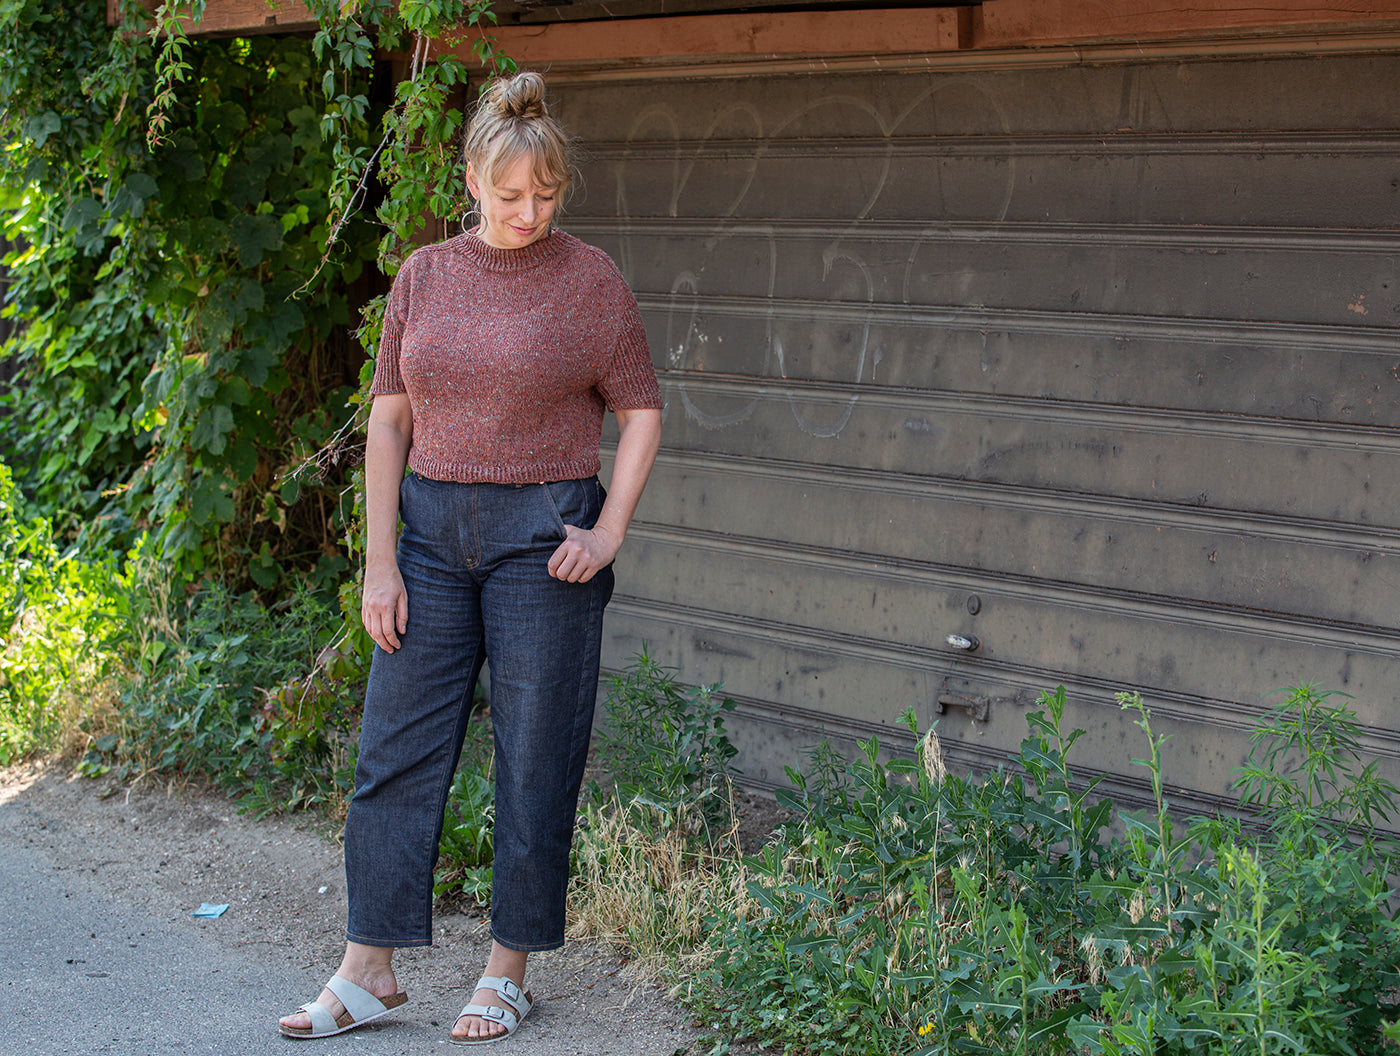 This is an image of a woman in a maroon sweater short sleeved shirt standing by some vines